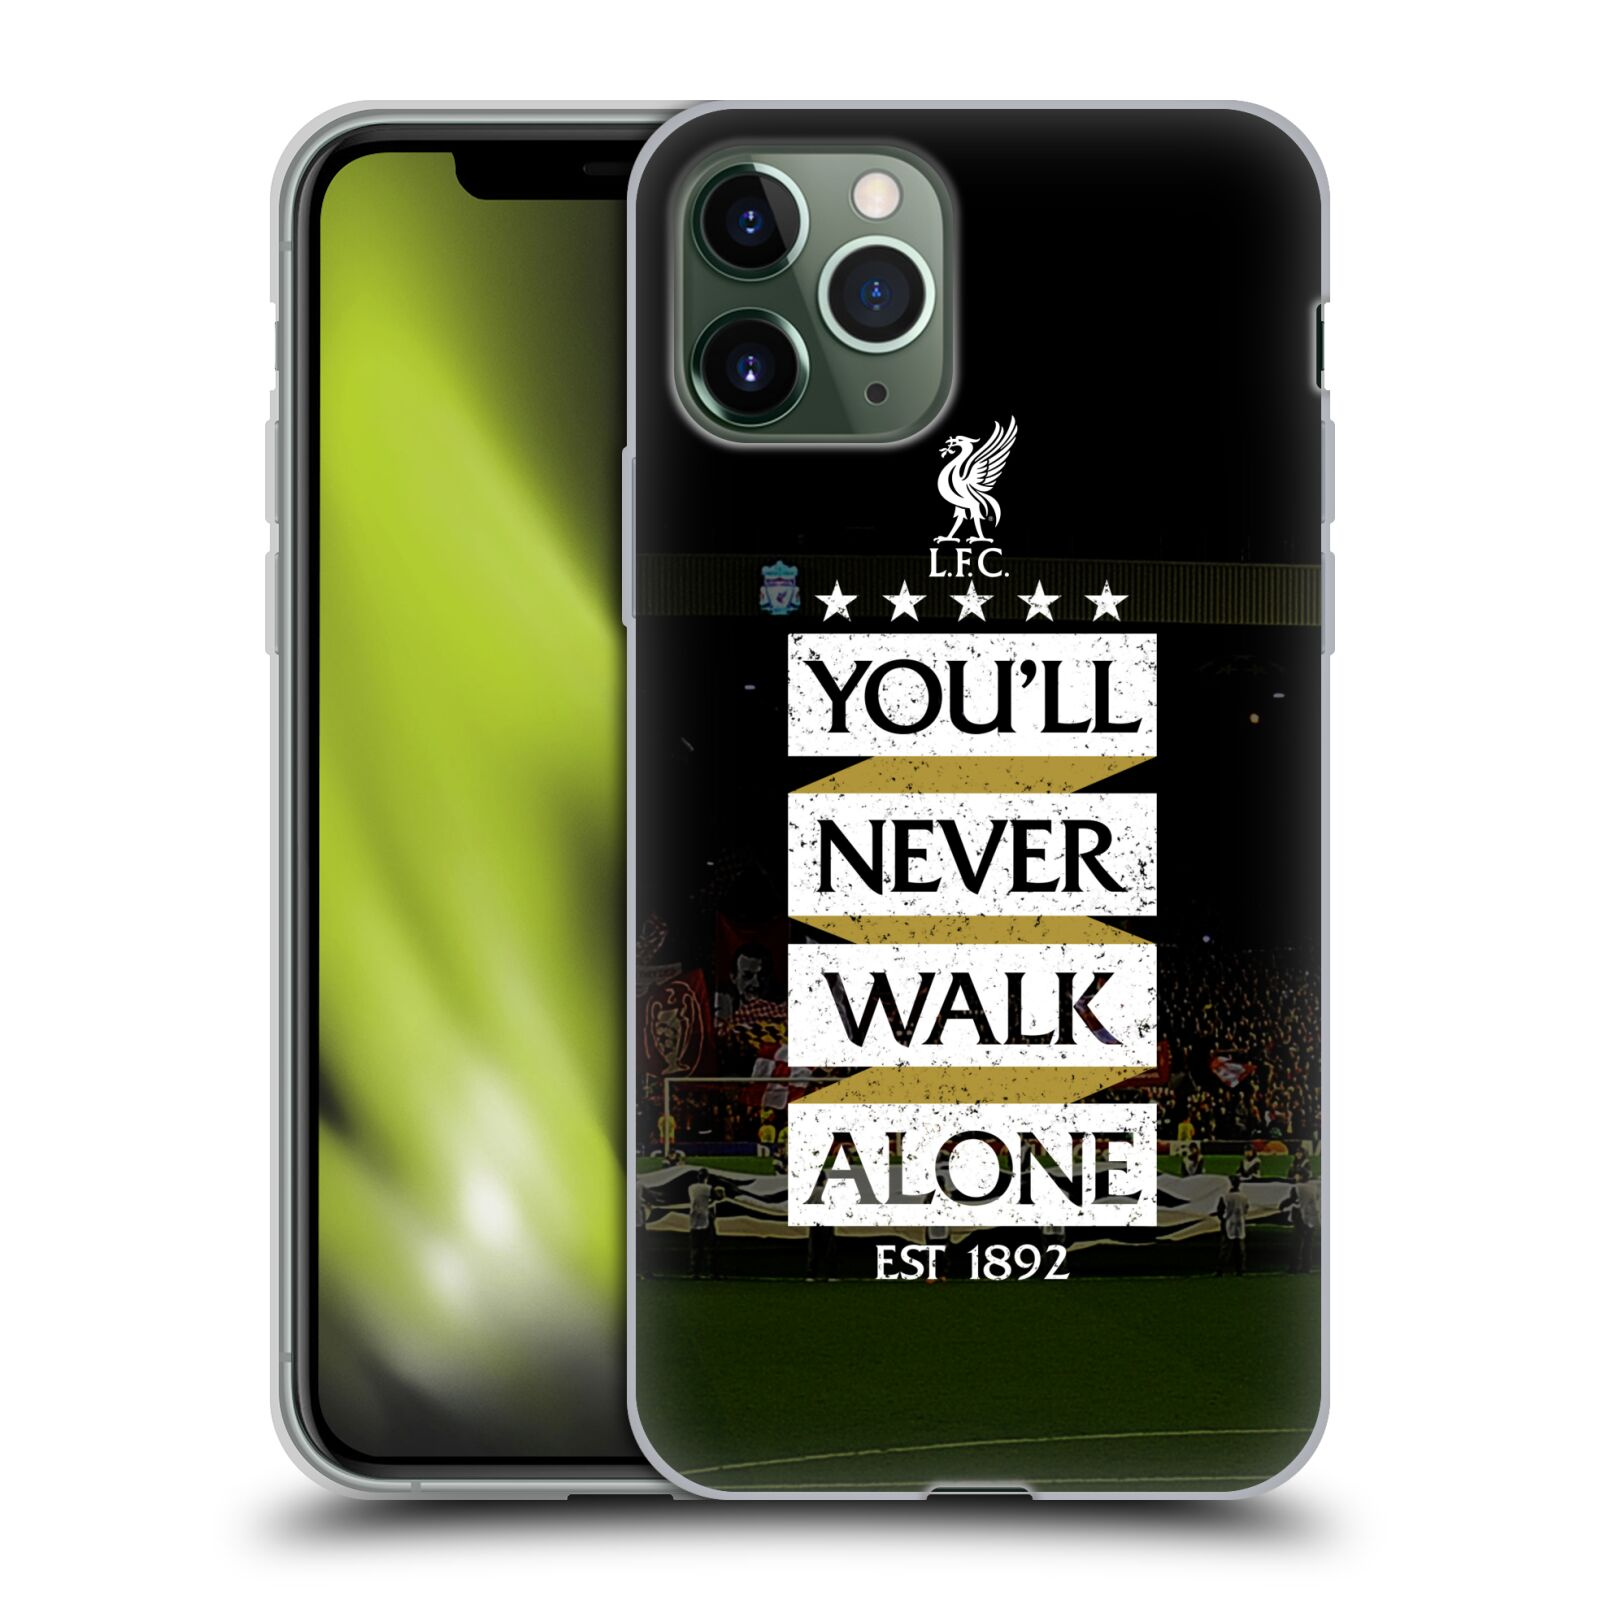 lagerfeld obaly iphone 7 plus , Silikonové pouzdro na mobil Apple iPhone 11 Pro - Head Case - LFC You'll Never Walk Alone